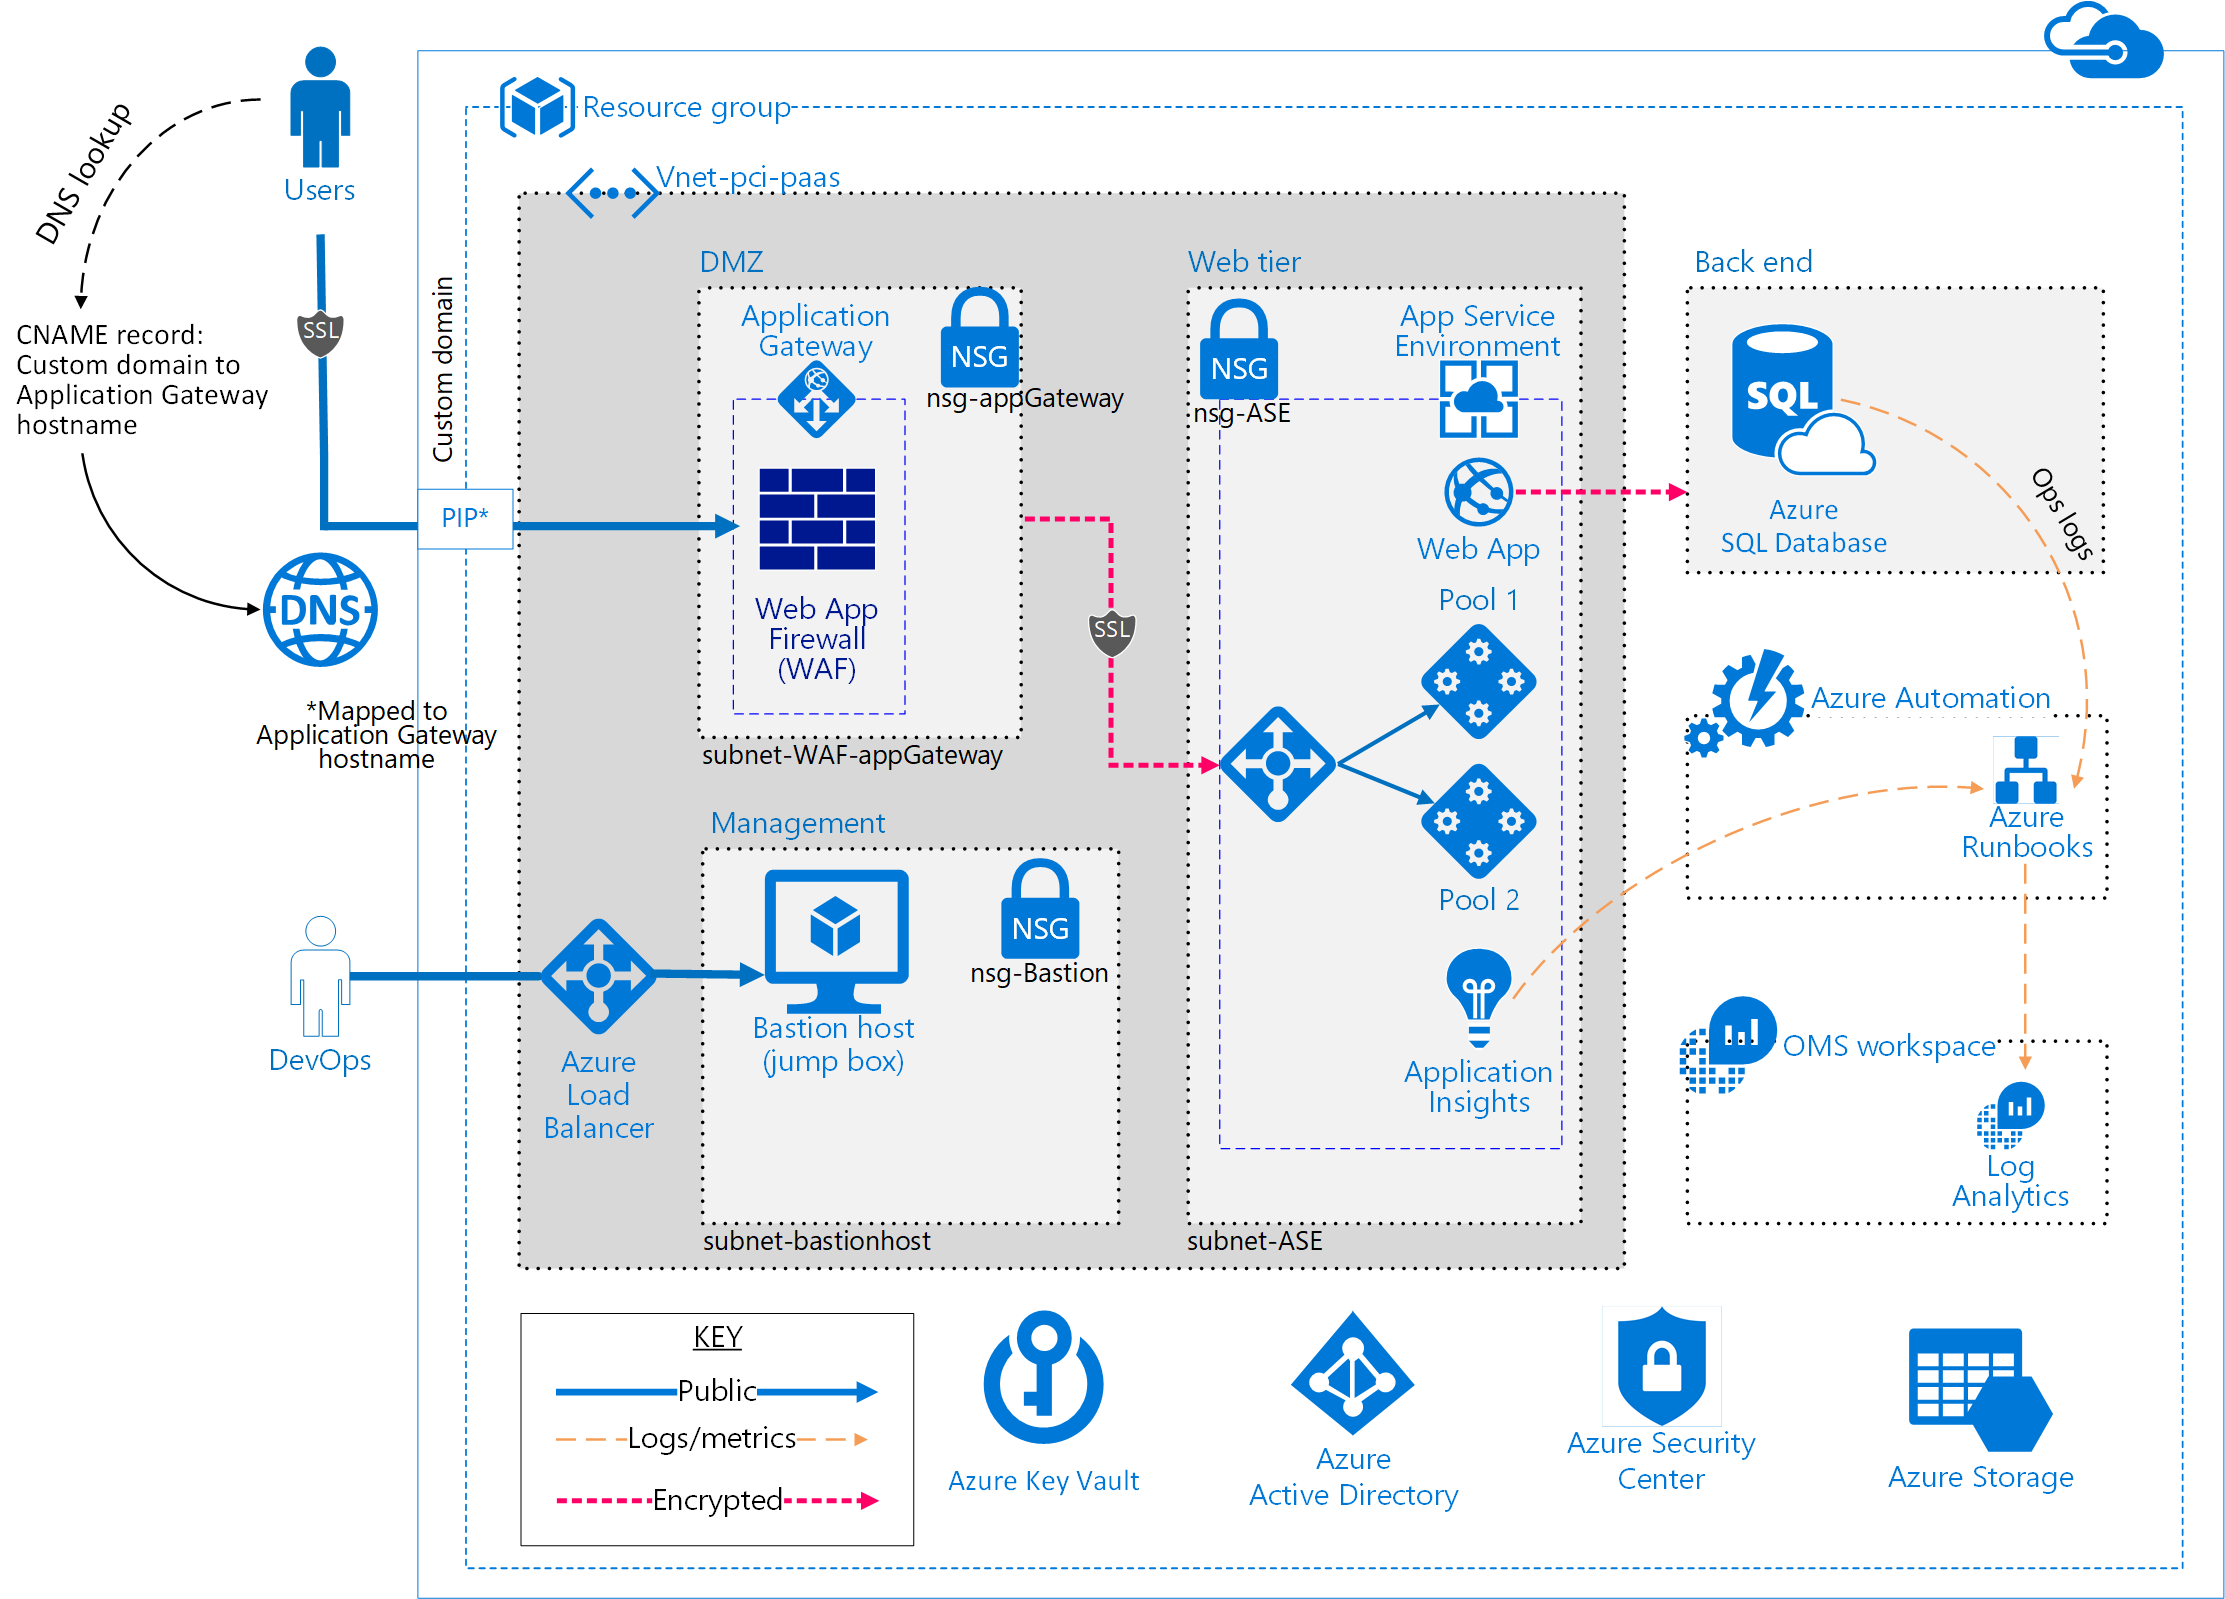 Azure security and compliance blueprint pci dss compliant architectural diagram nvjuhfo Gallery